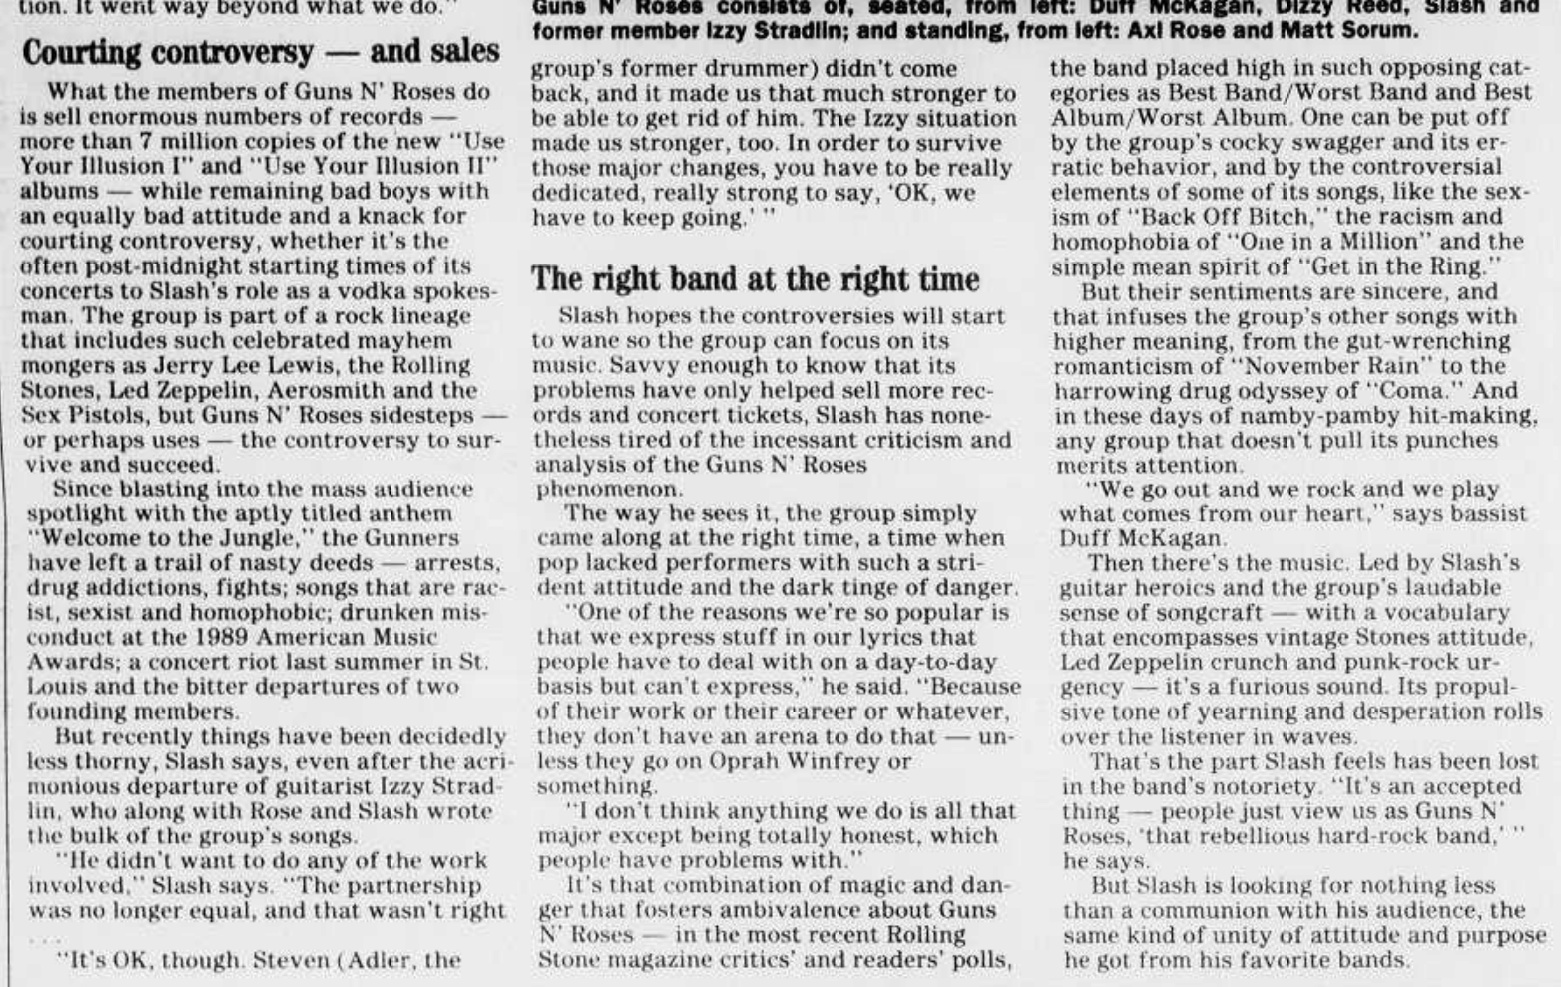 1992.04.12 - Detroit Free Press - Guns N' Roses Guitarist Cuts Right to the Heart (Slash) Colora11